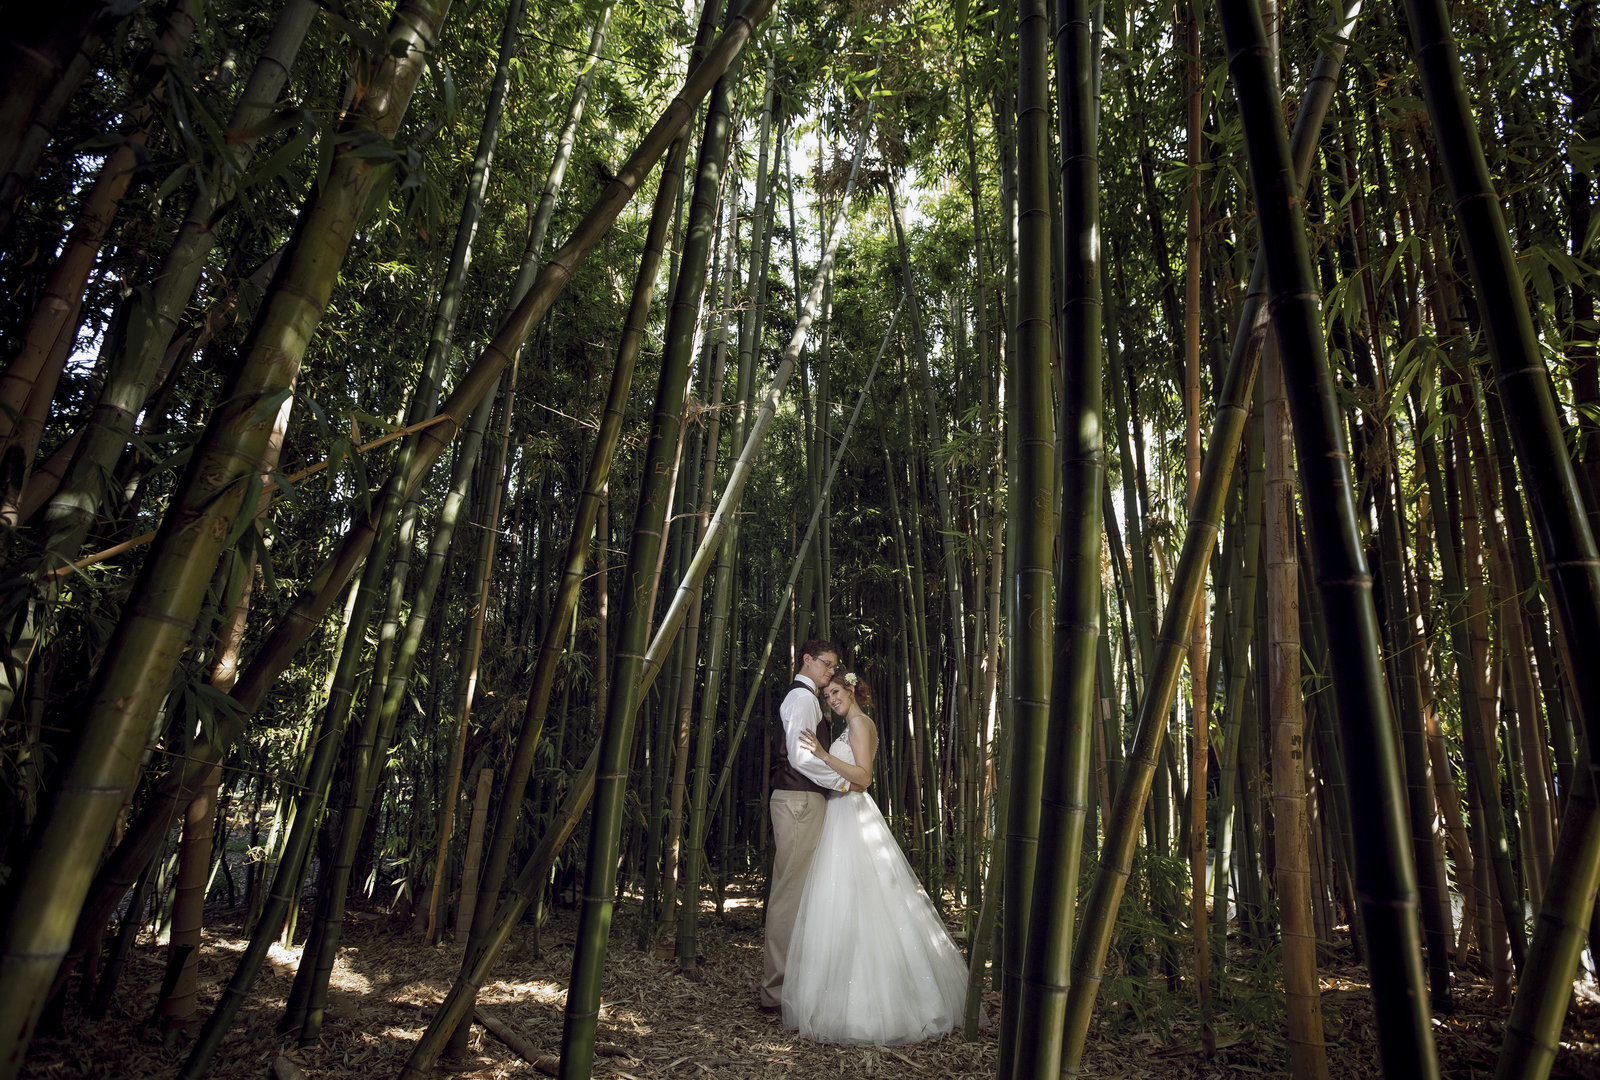 bride and groom embracing in a bamboo forest